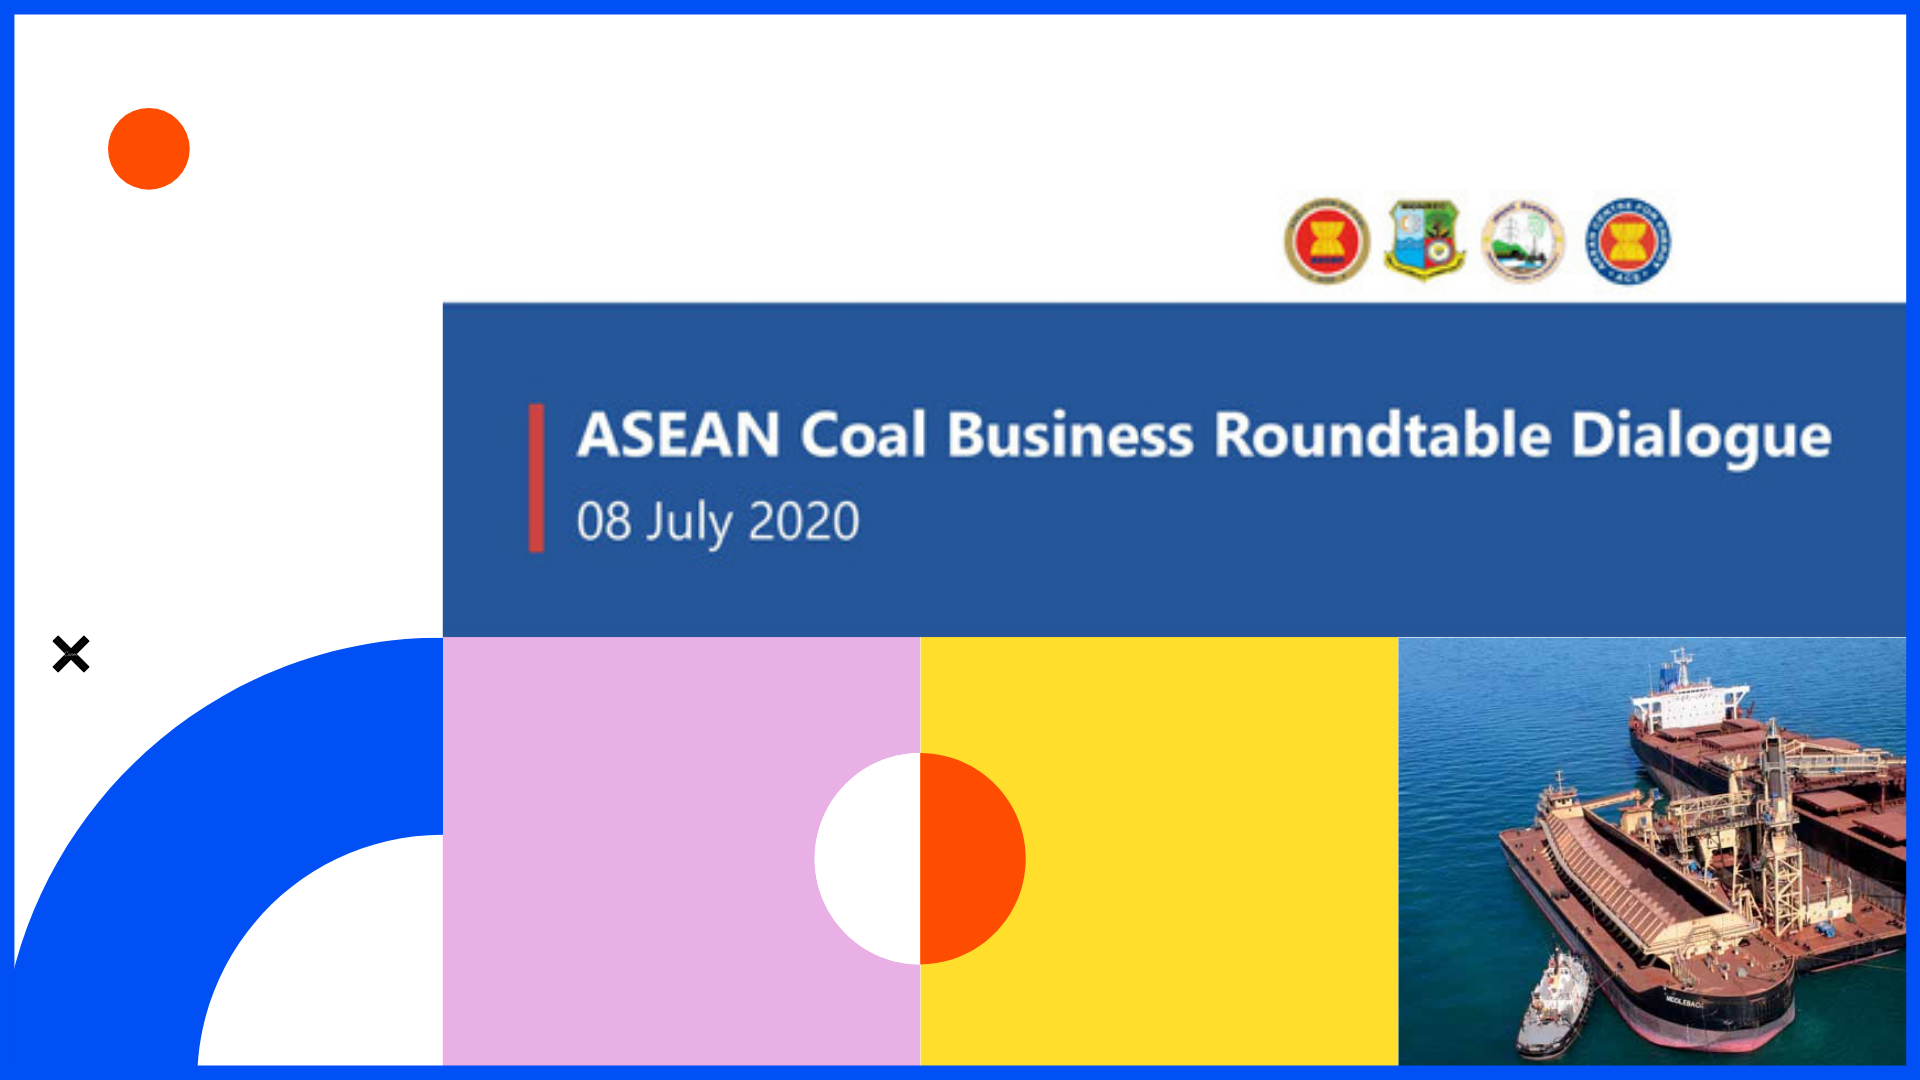 ASEAN Coal Business Roundtable Dialogue